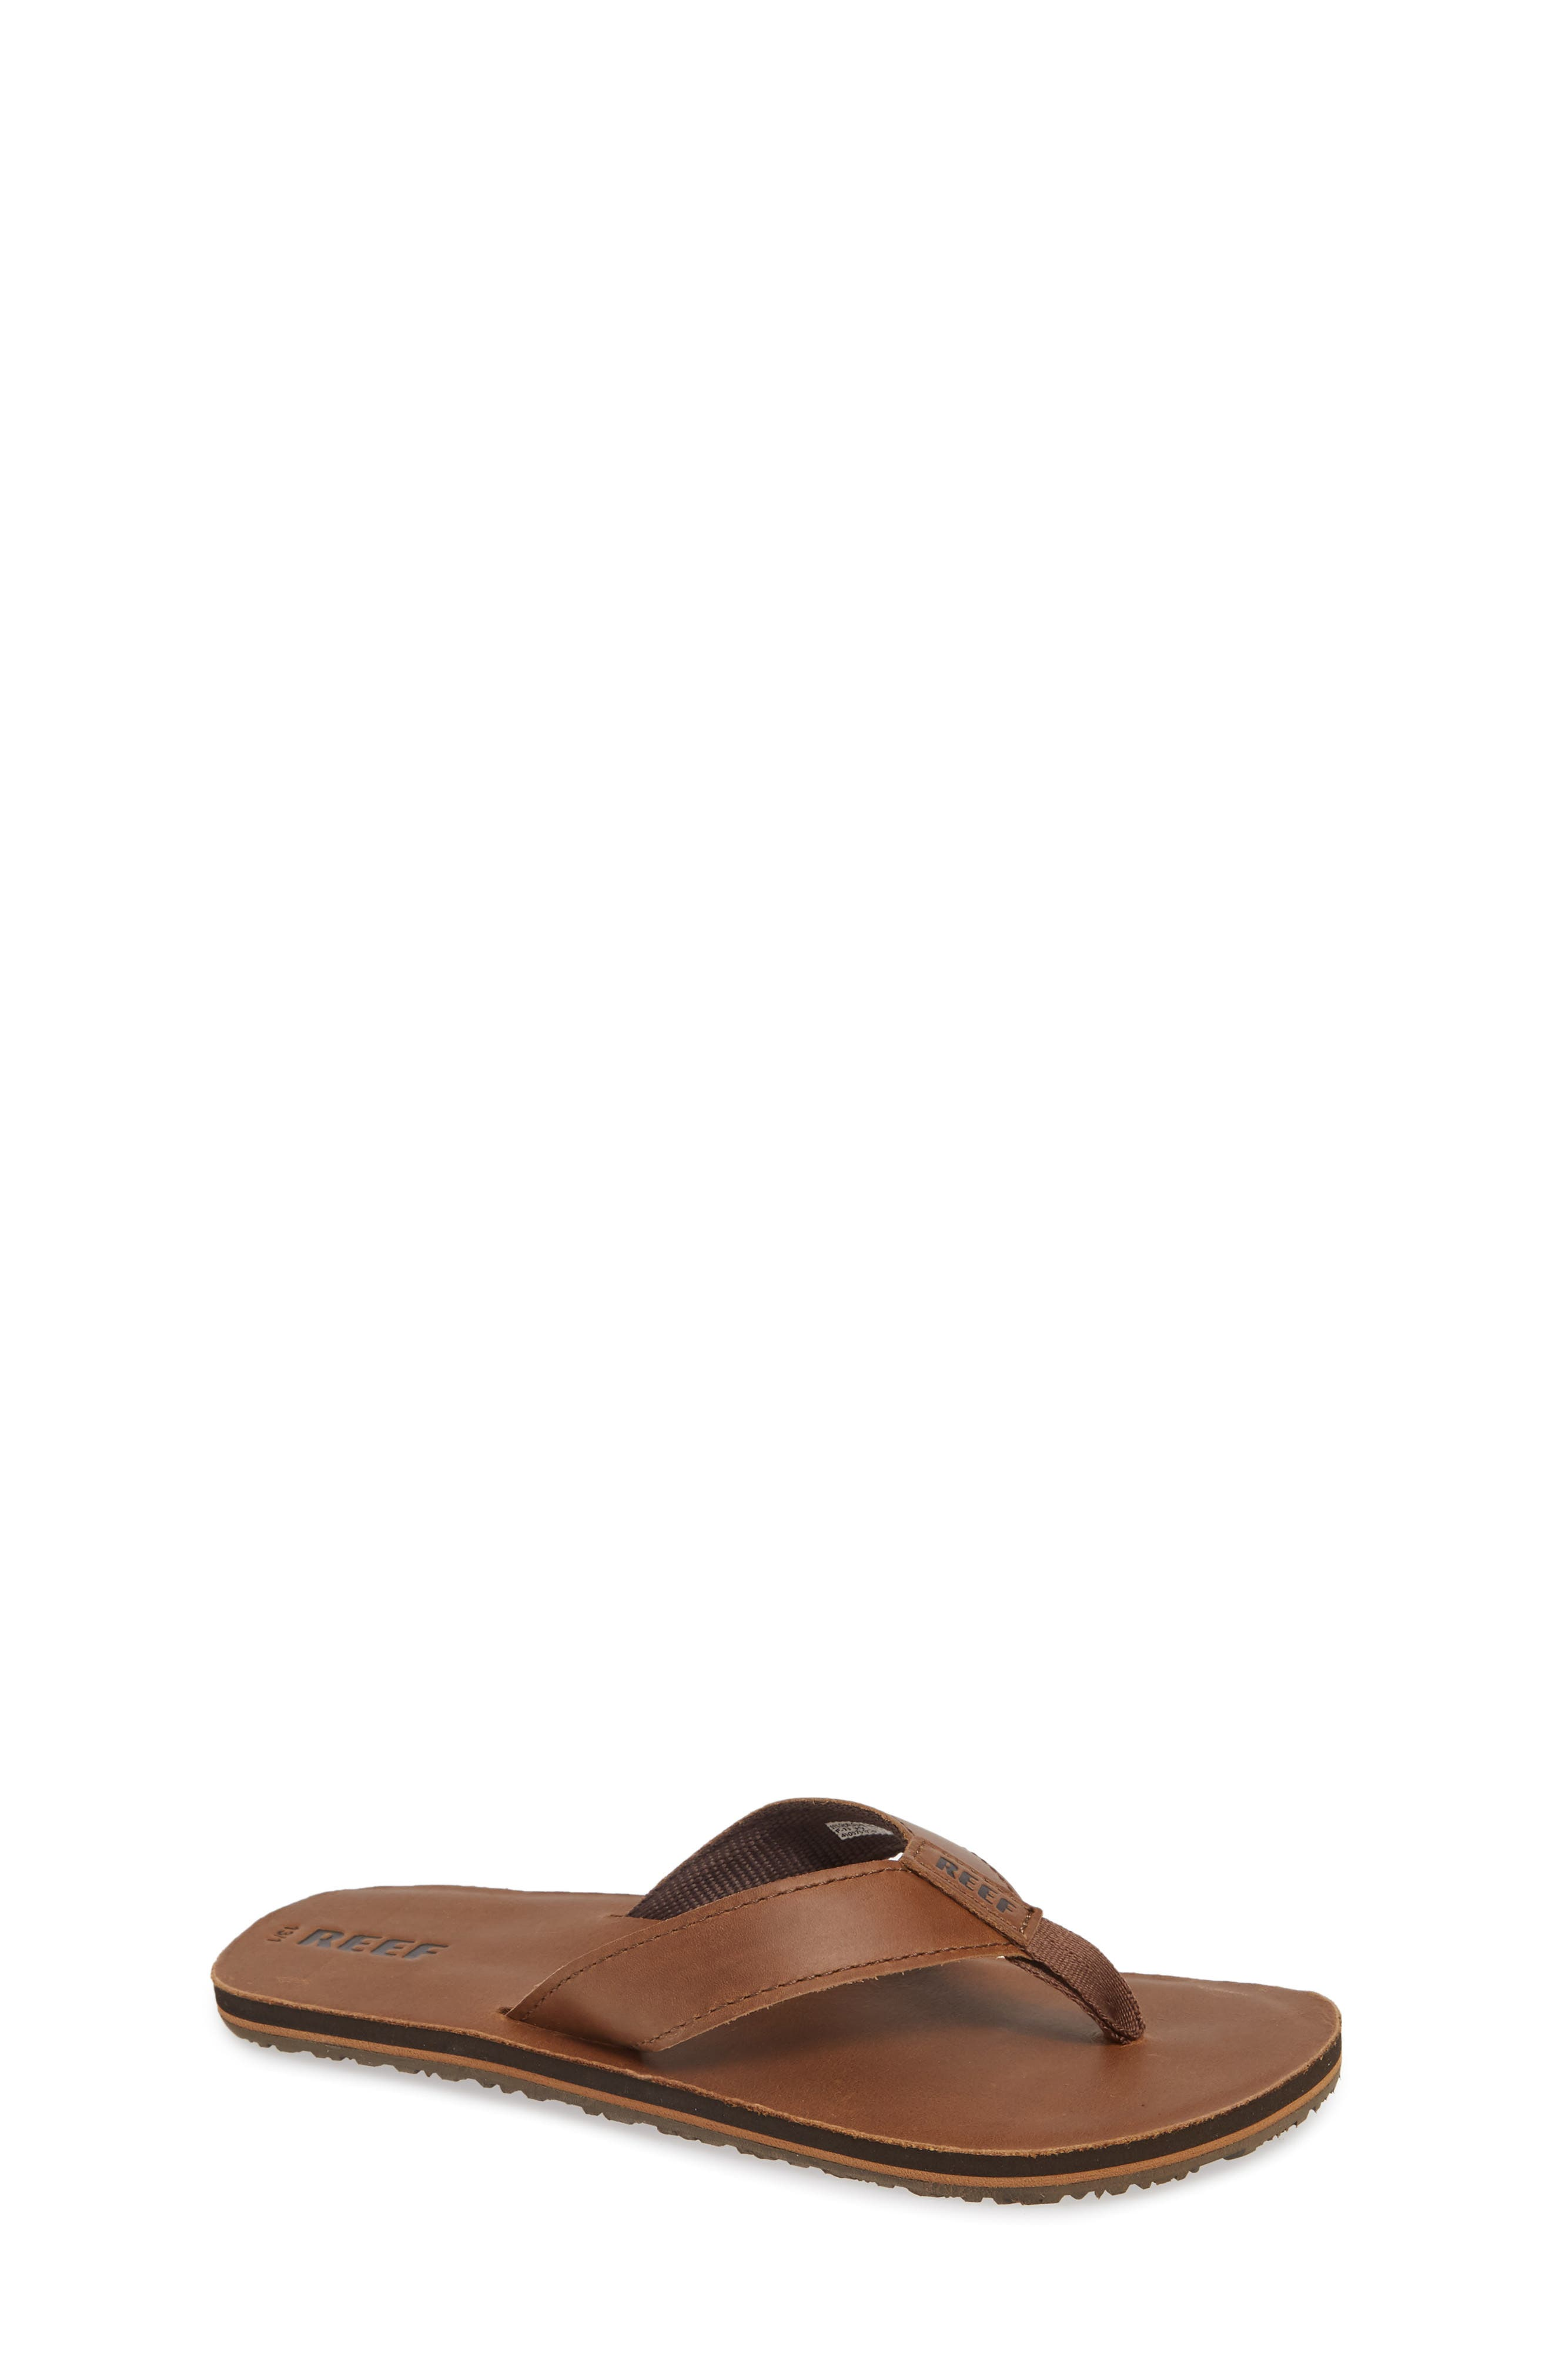 REEF, Smoothy Flip Flop, Main thumbnail 1, color, BRONZE BROWN